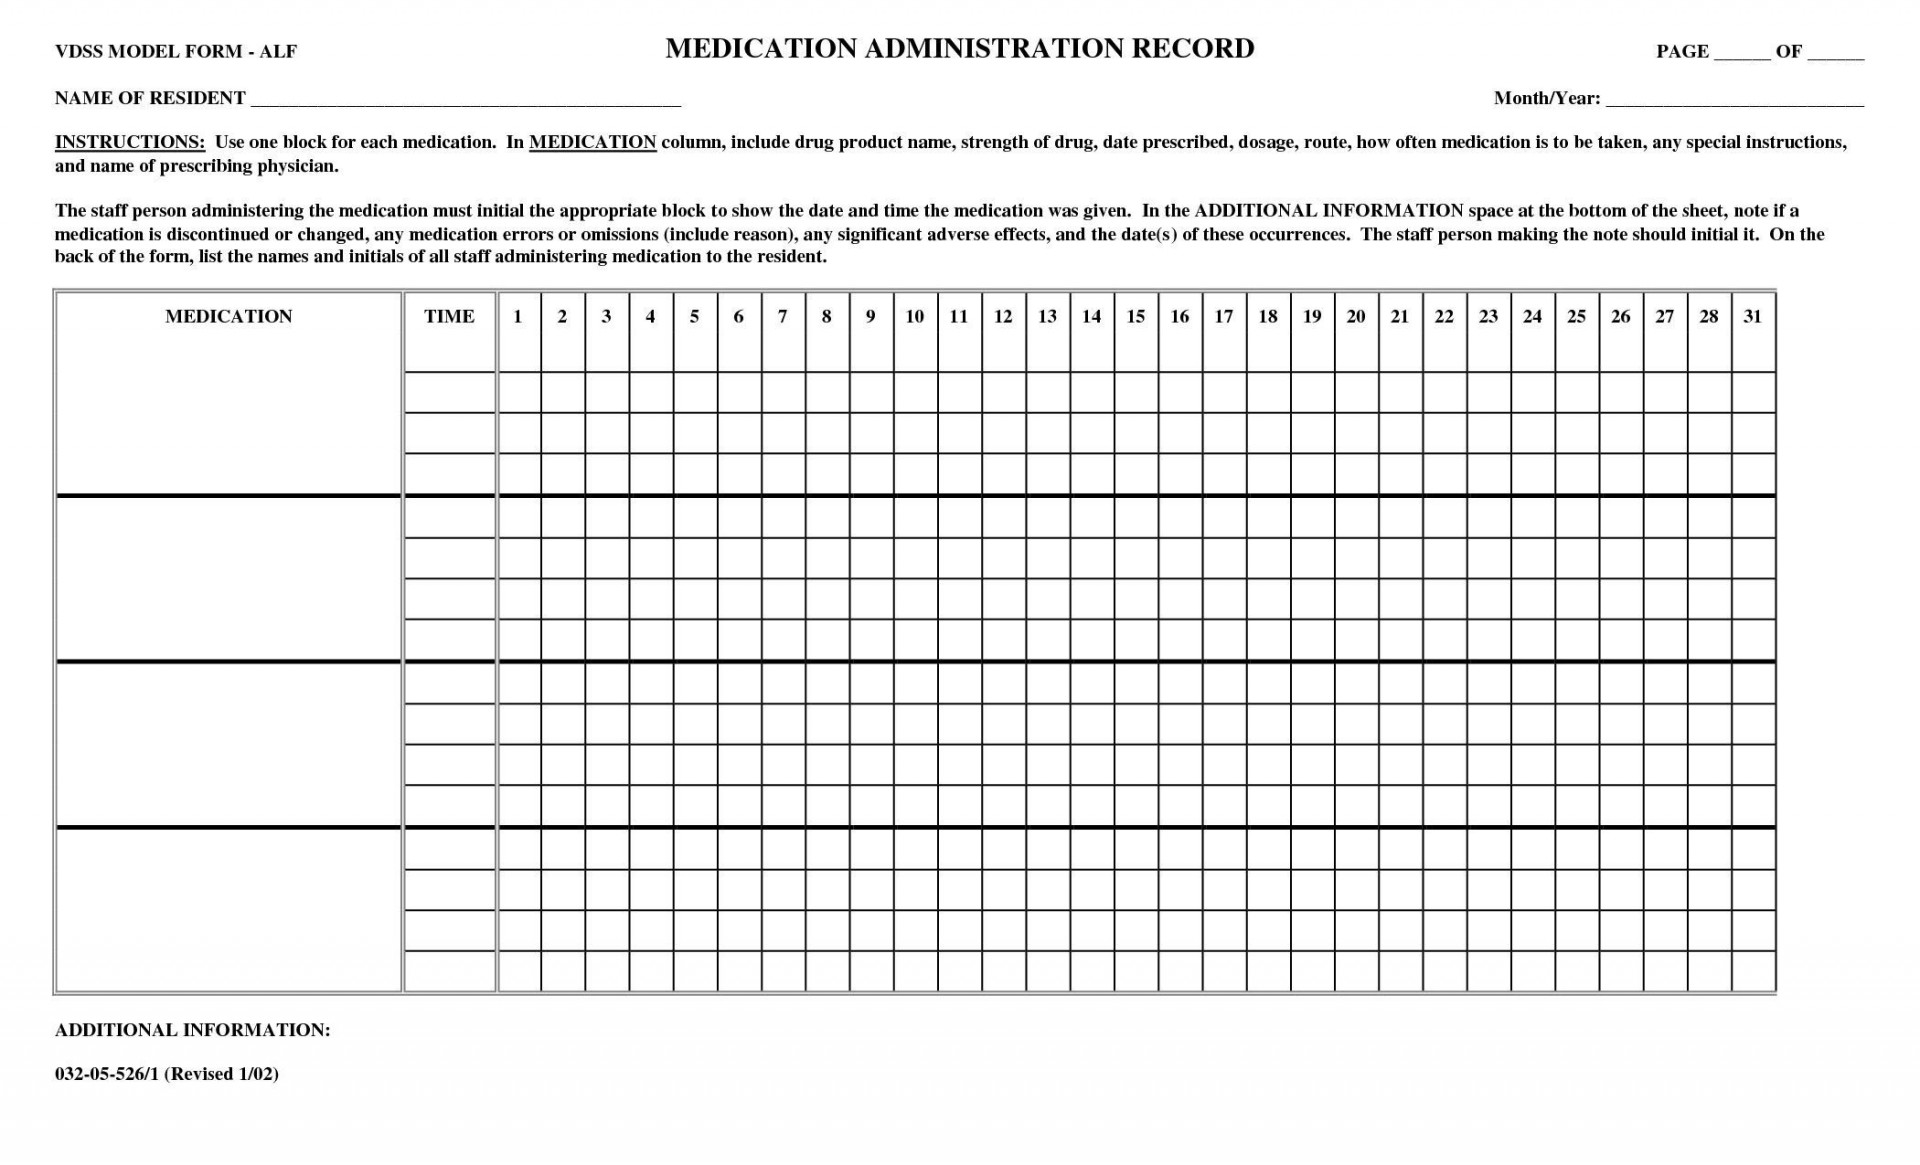 006 Incredible Medication Administration Record Form Download Design 1920